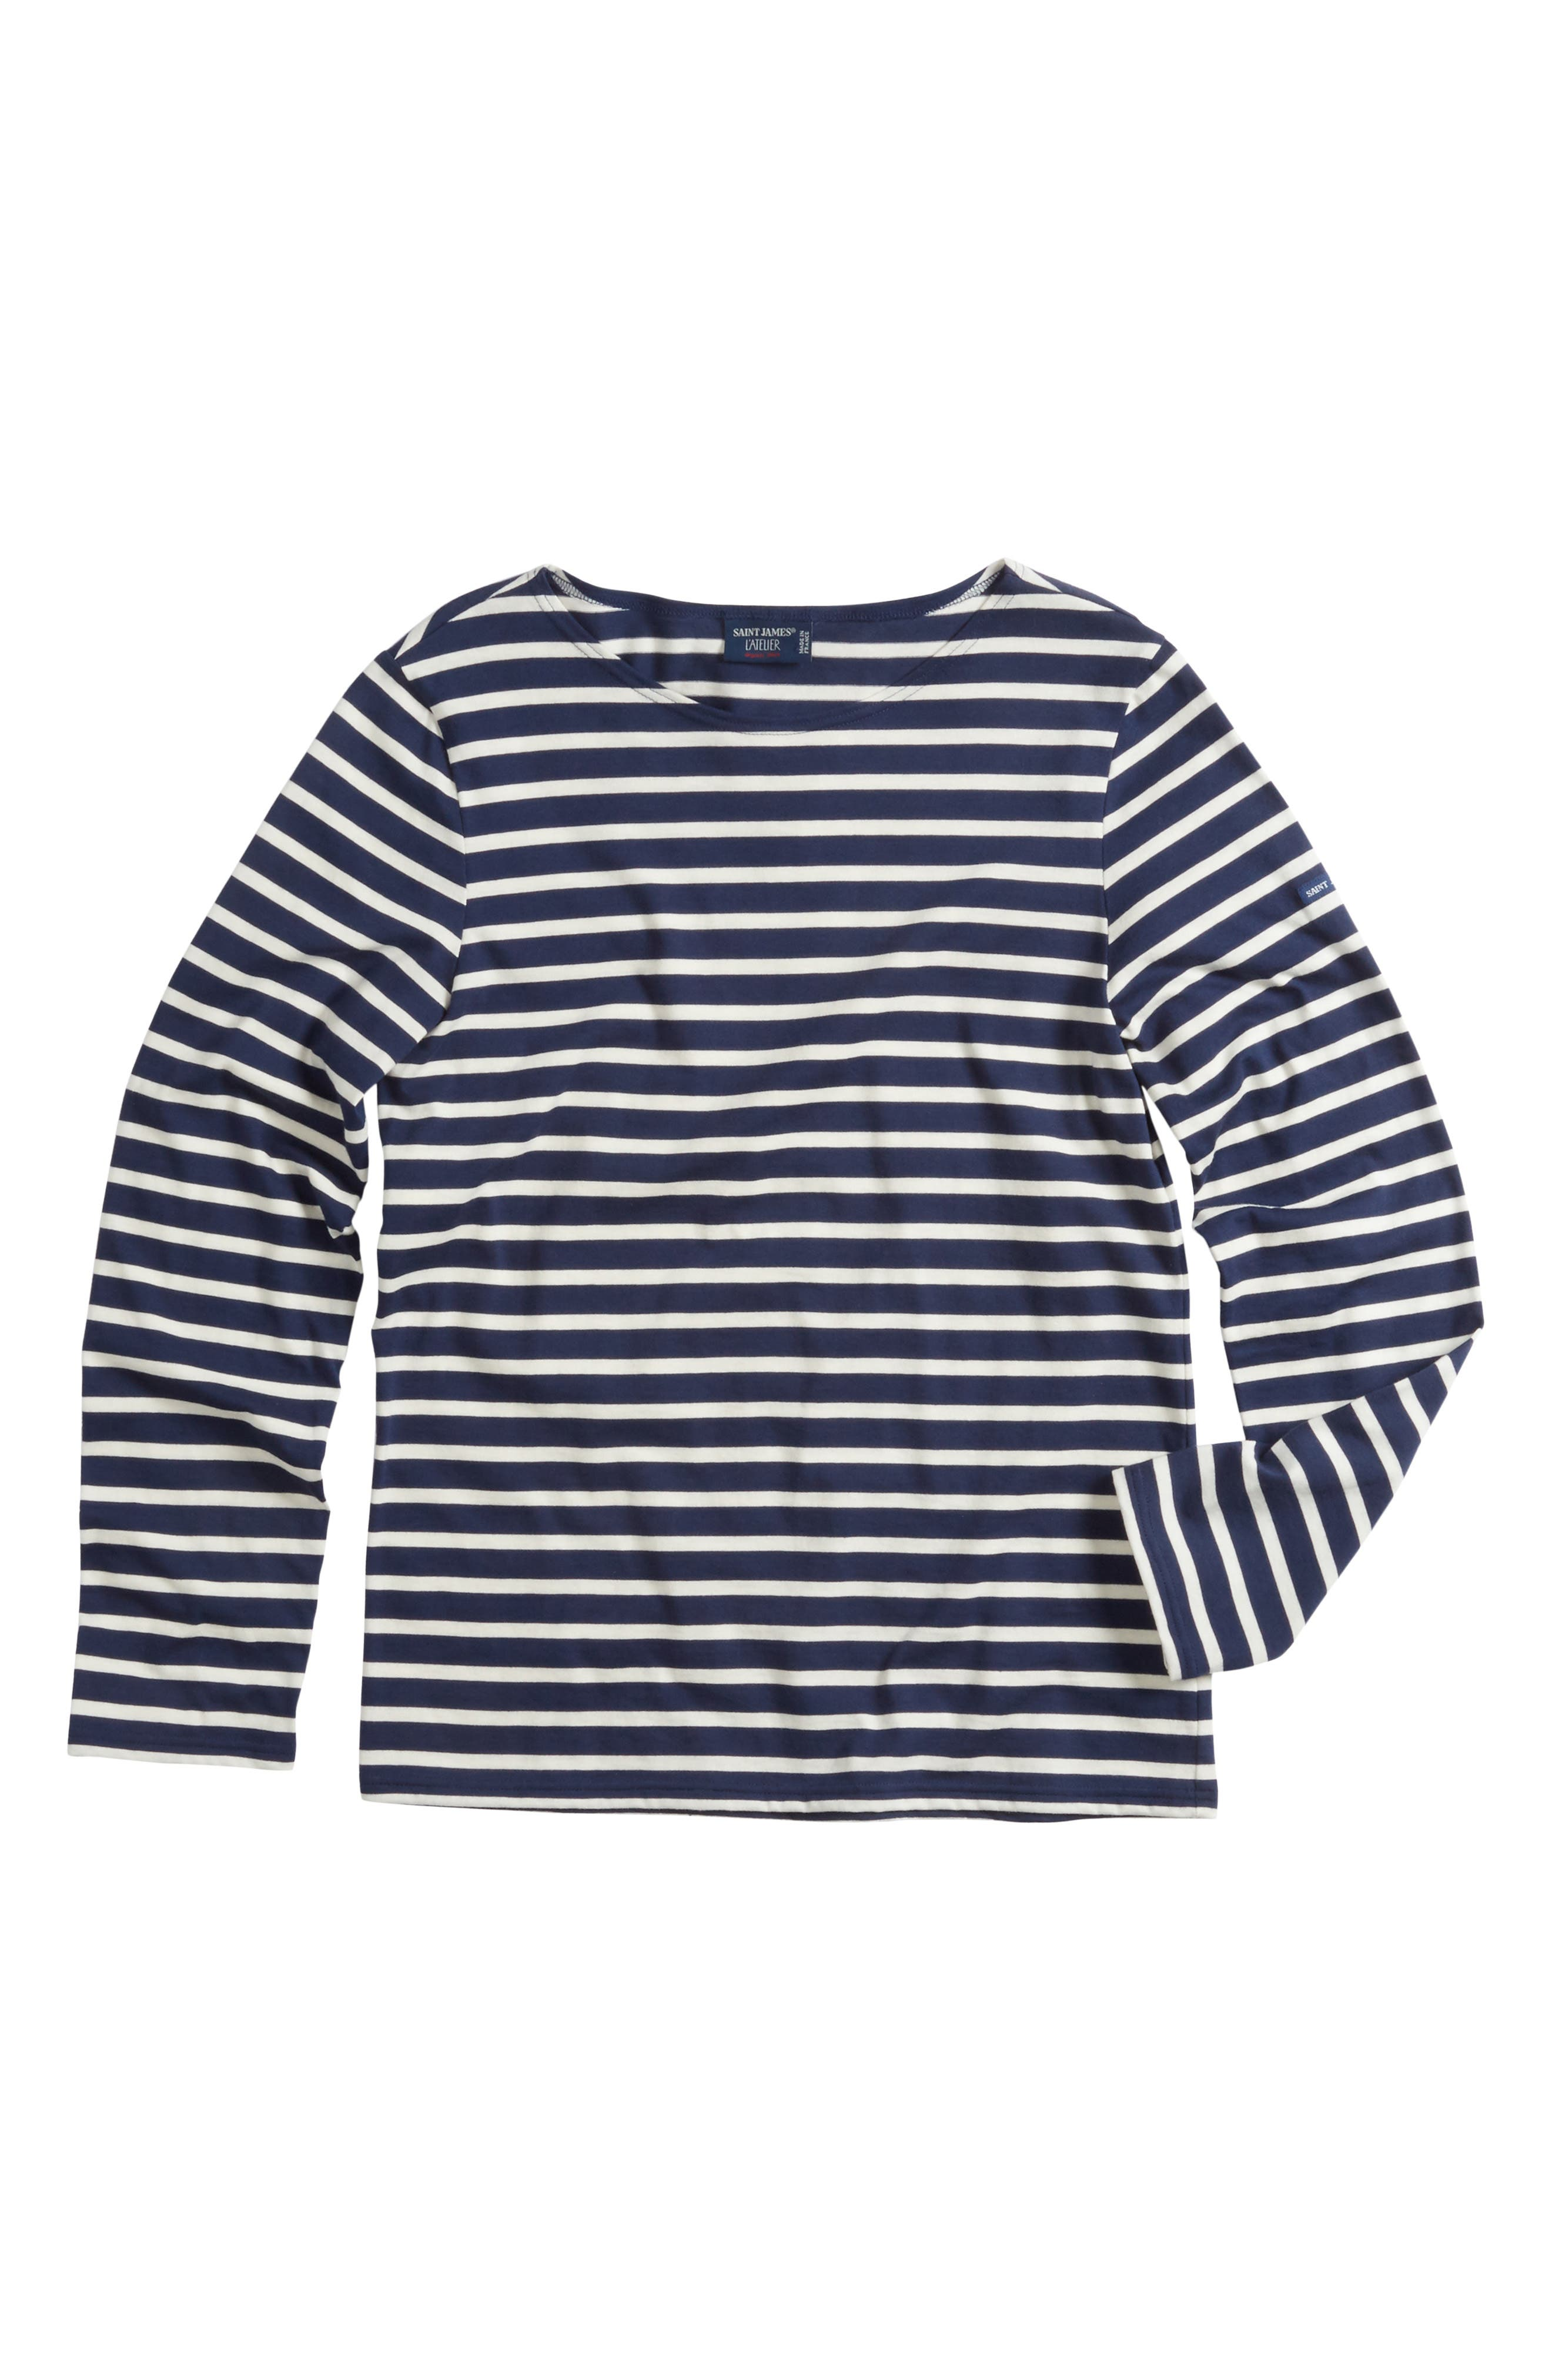 Minquiers Moderne Striped Sailor Shirt,                         Main,                         color, Navy/ Off White